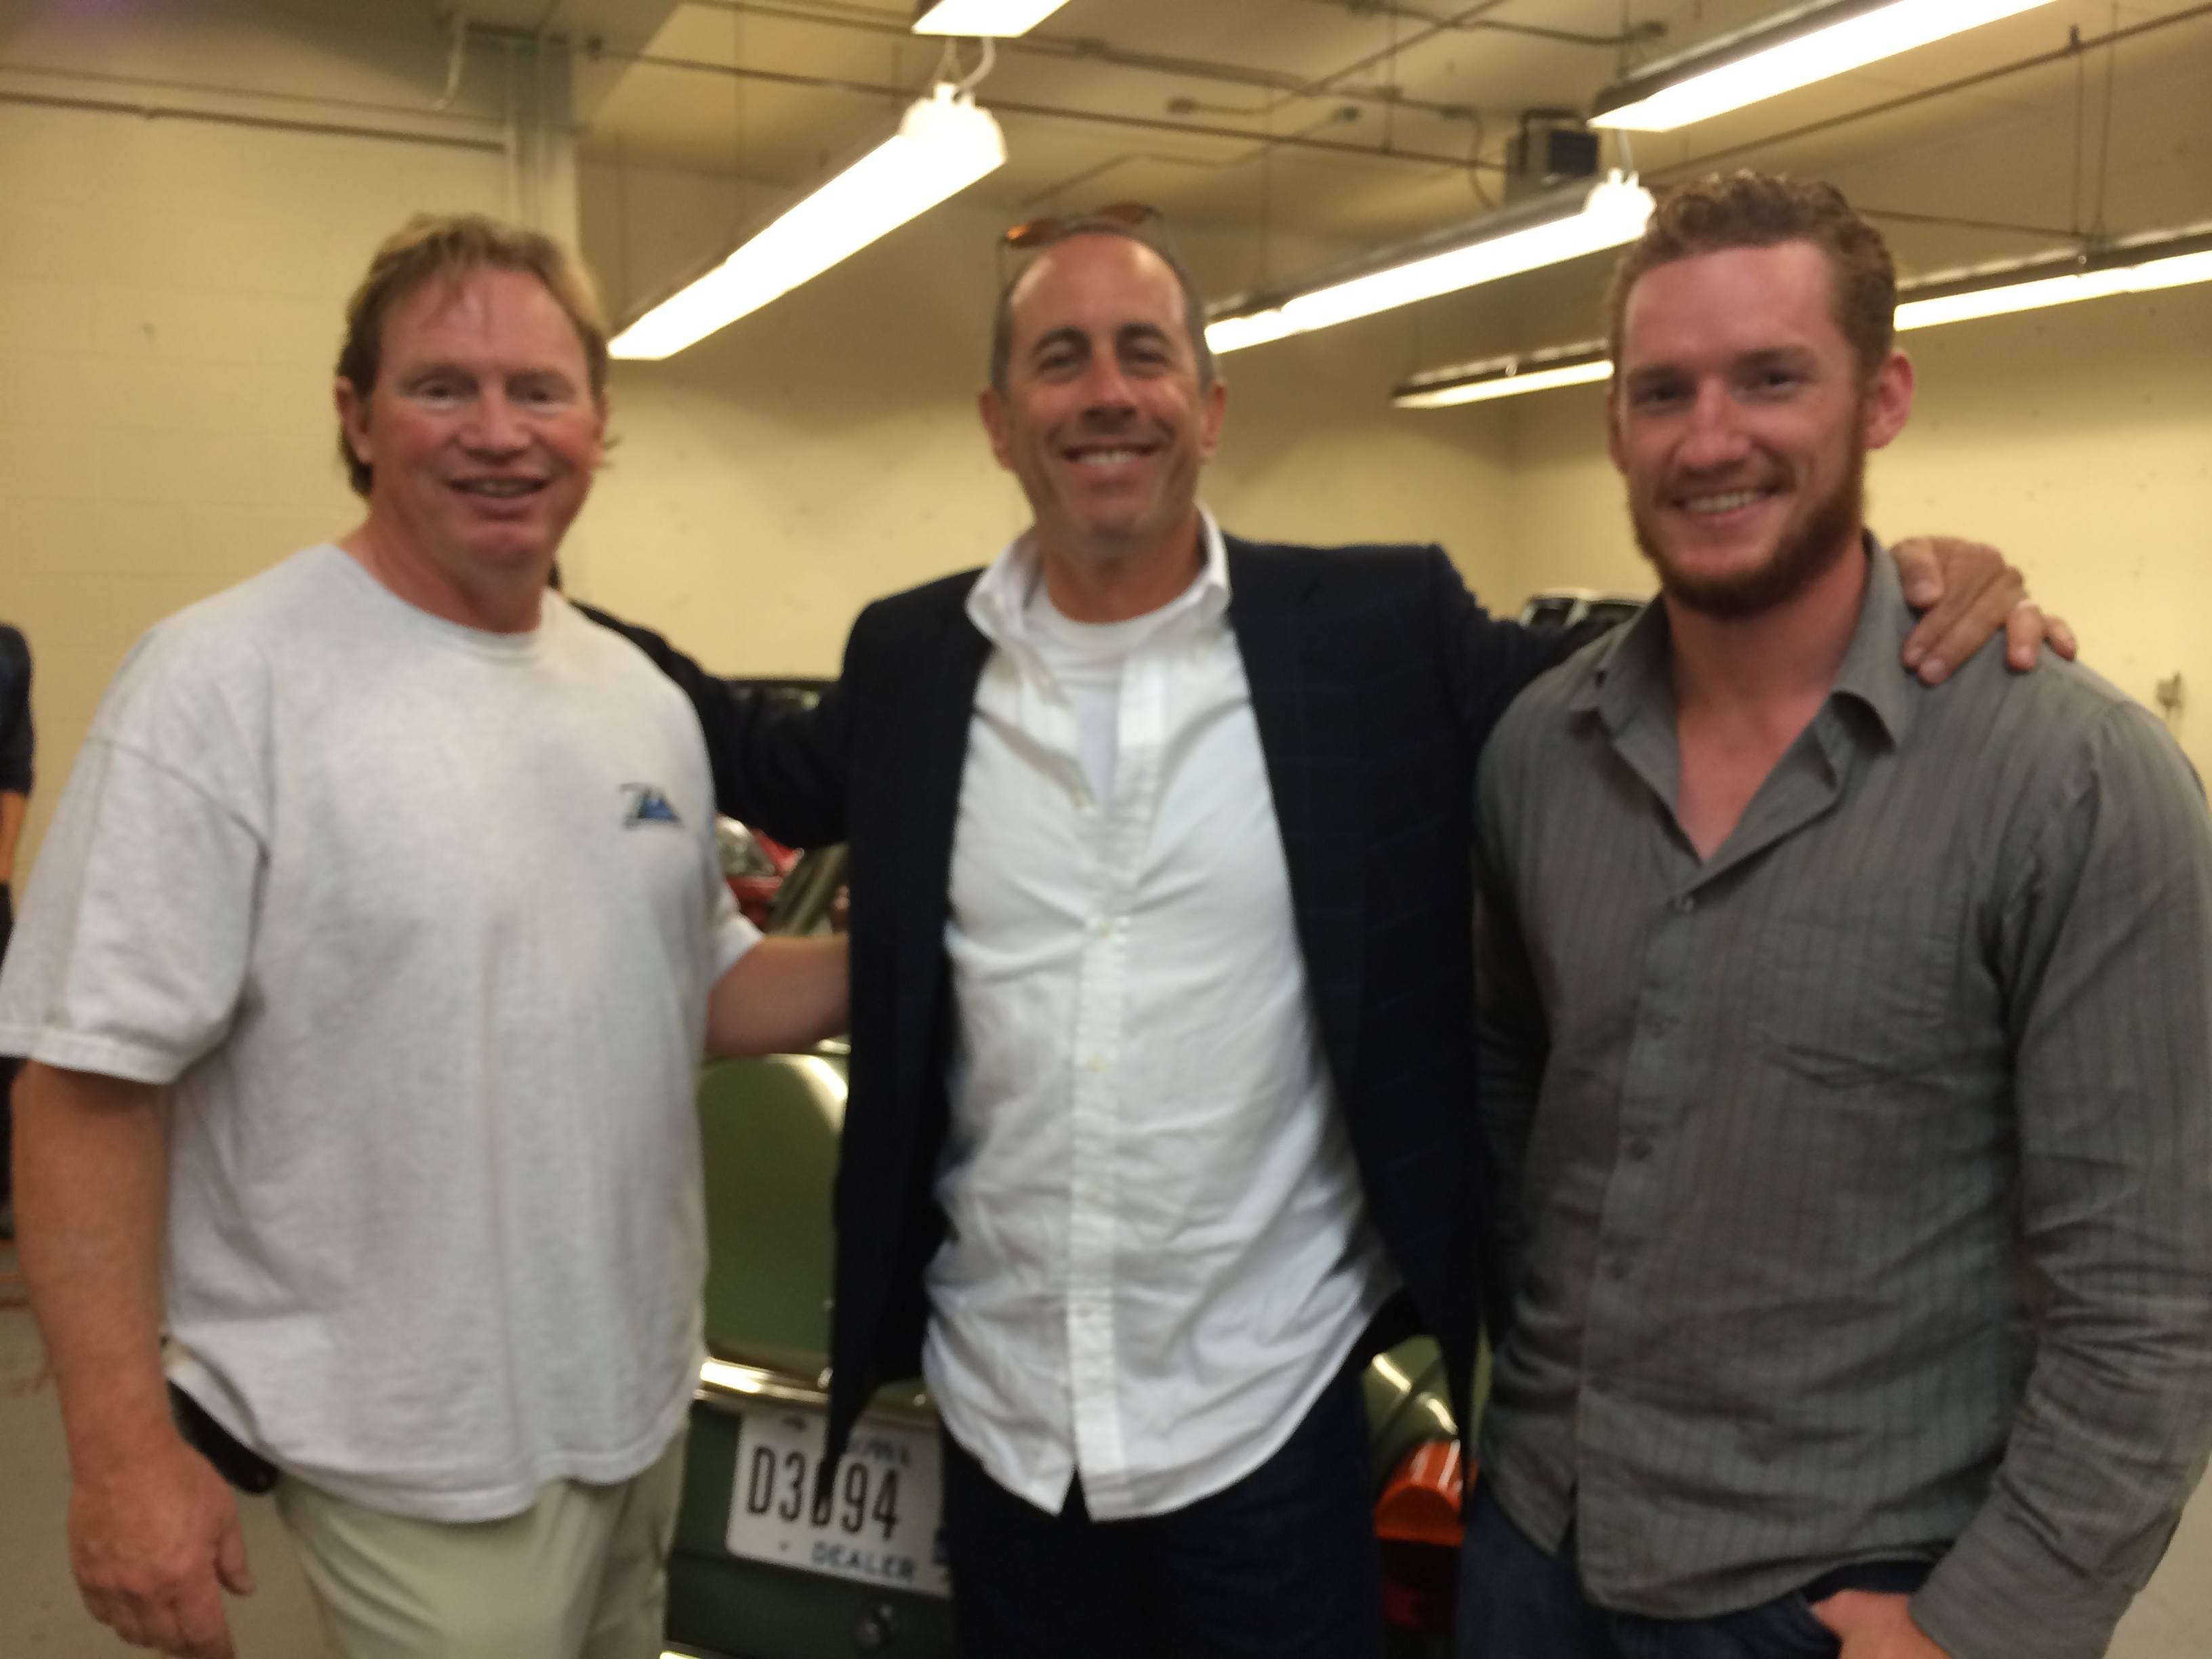 Tom and his son Nate with Jerry Seinfeld